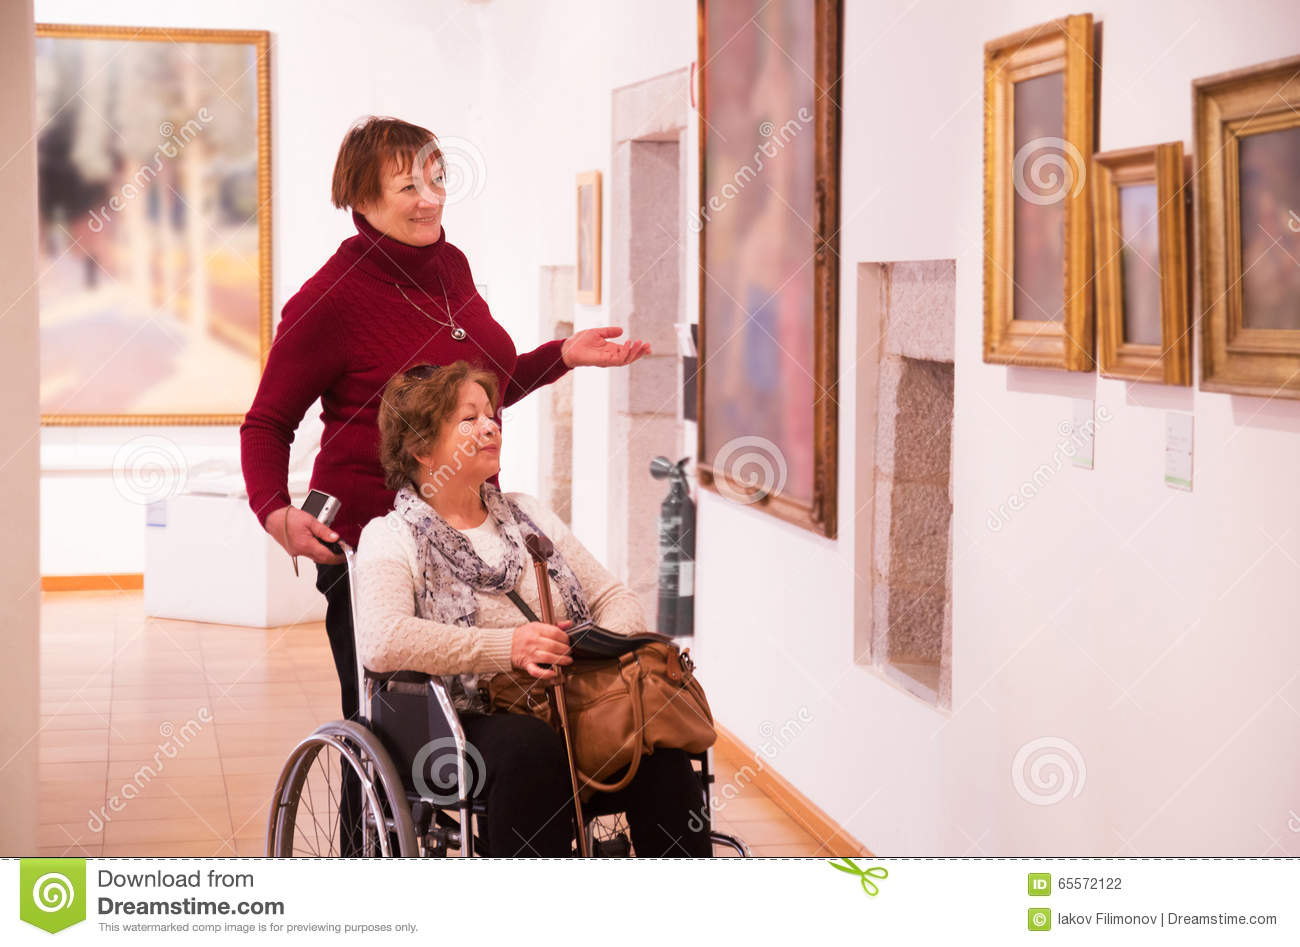 Really. gallery mature photo woman seems excellent